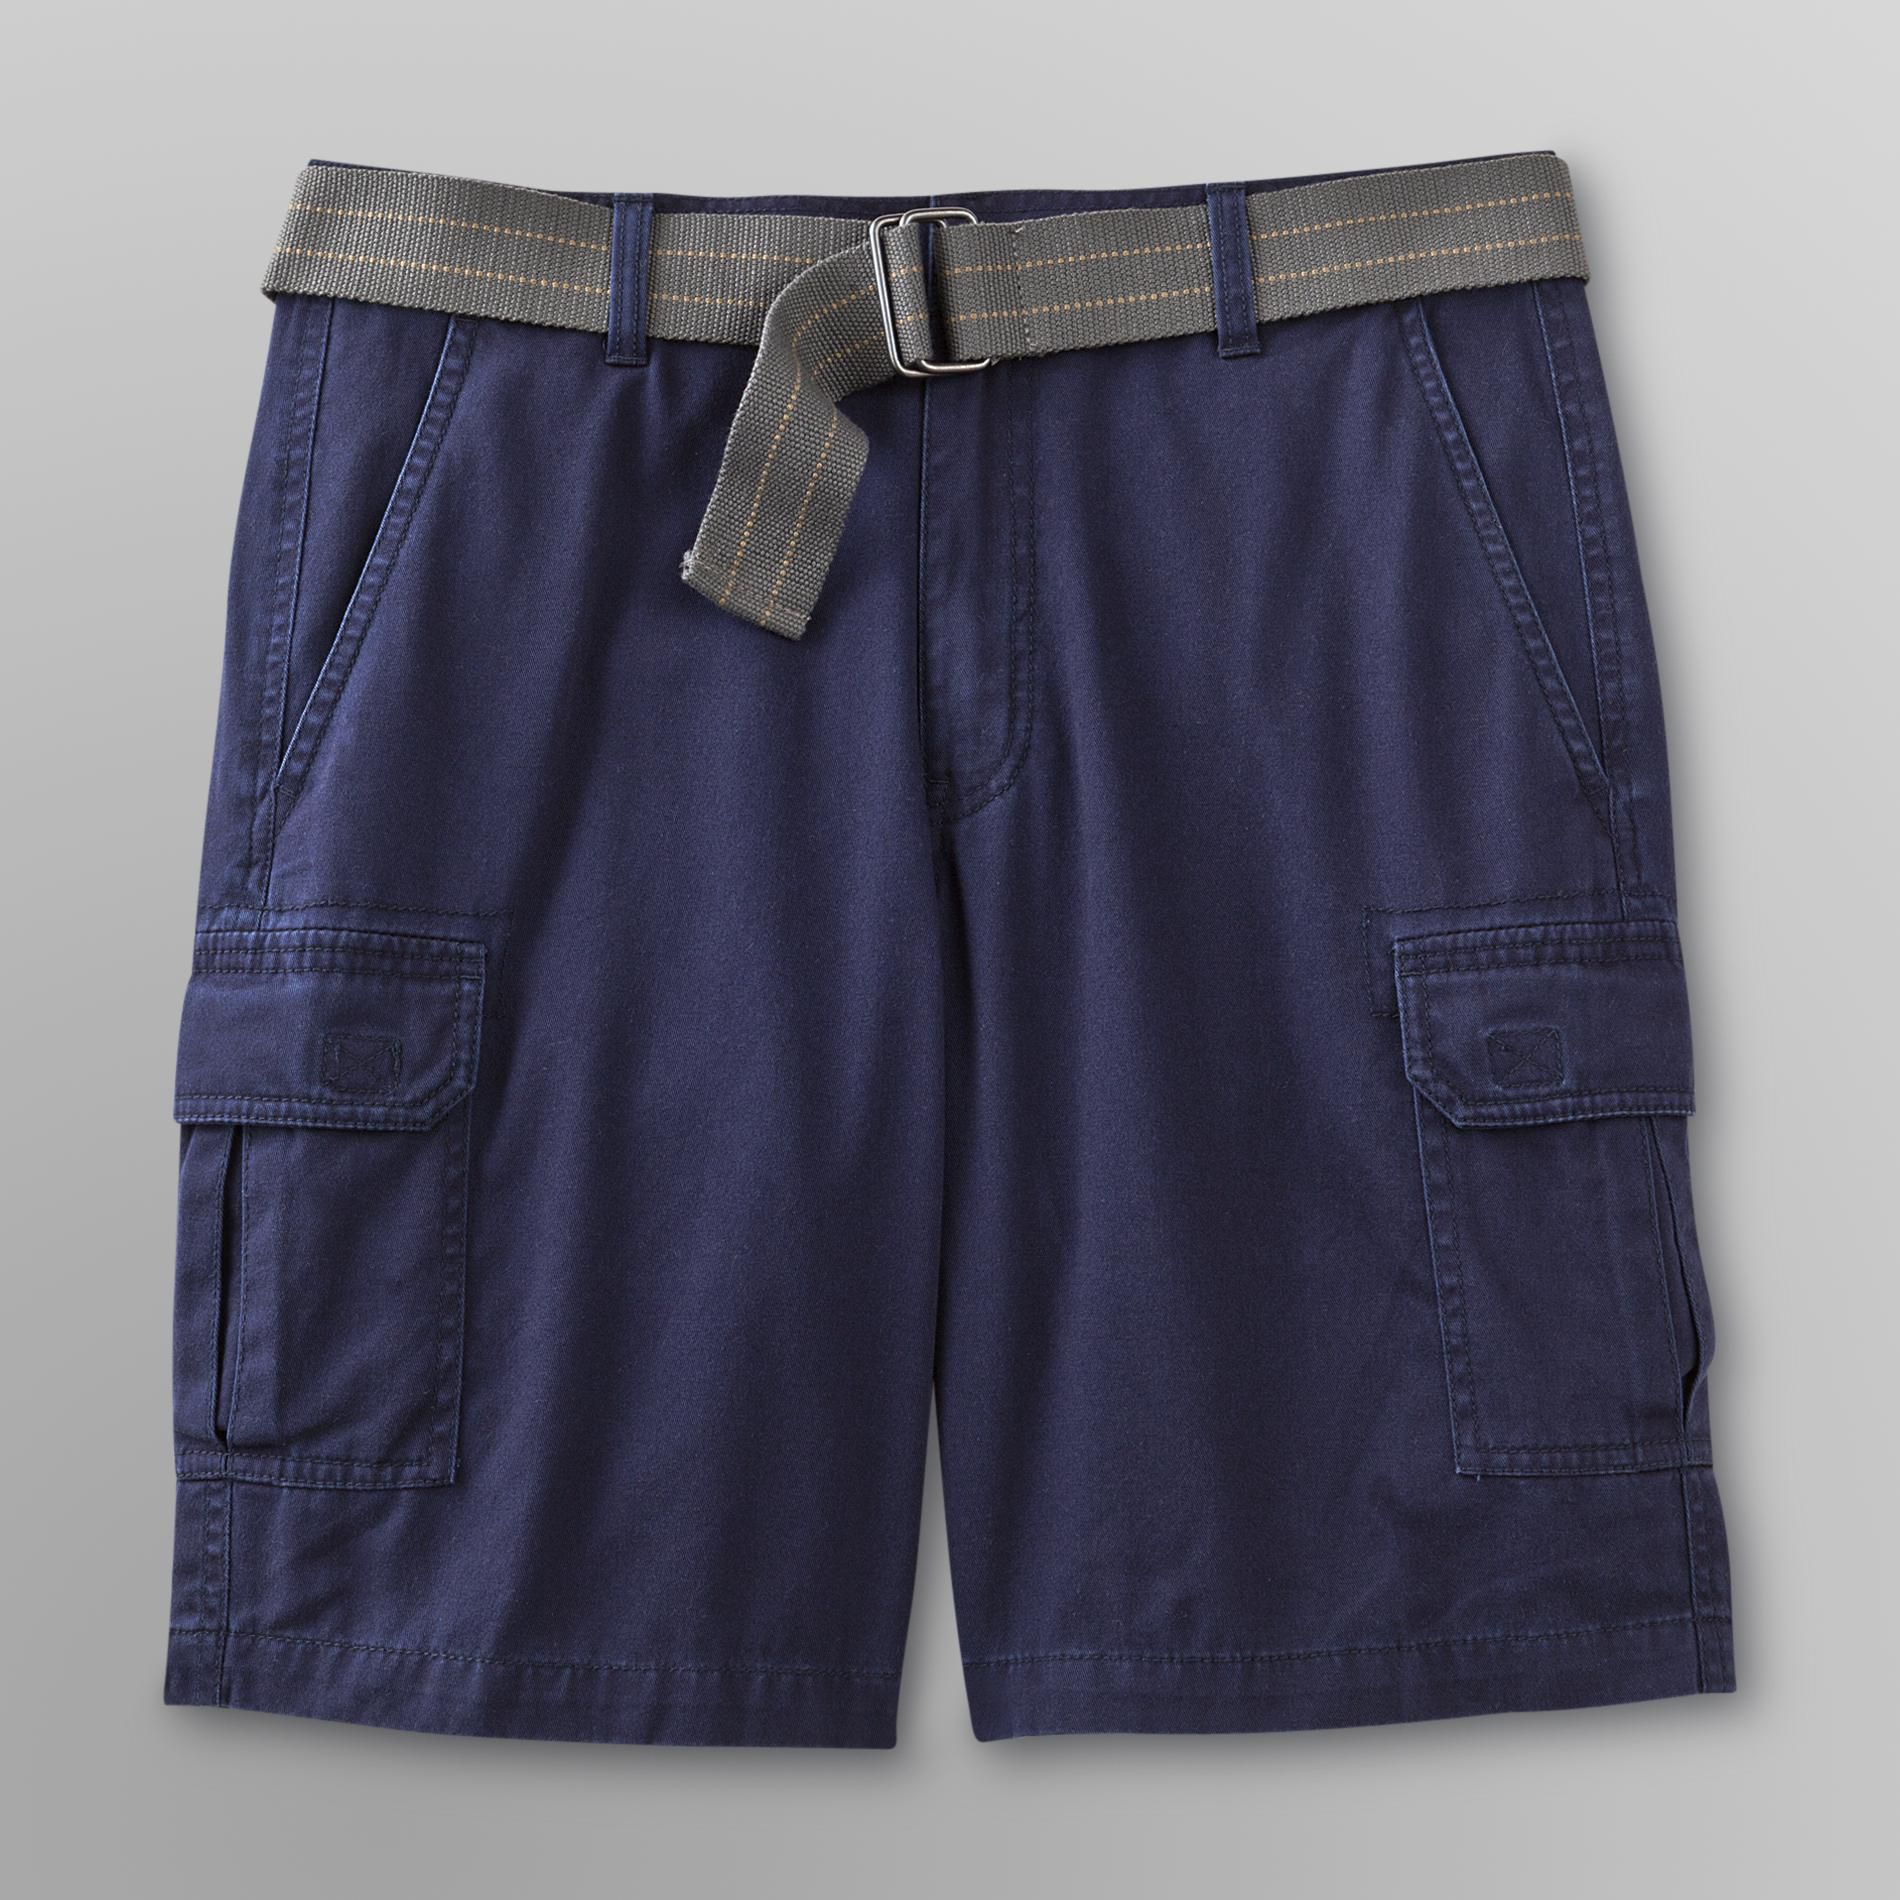 Basic Editions Men's Belted Cargo Shorts at Kmart.com